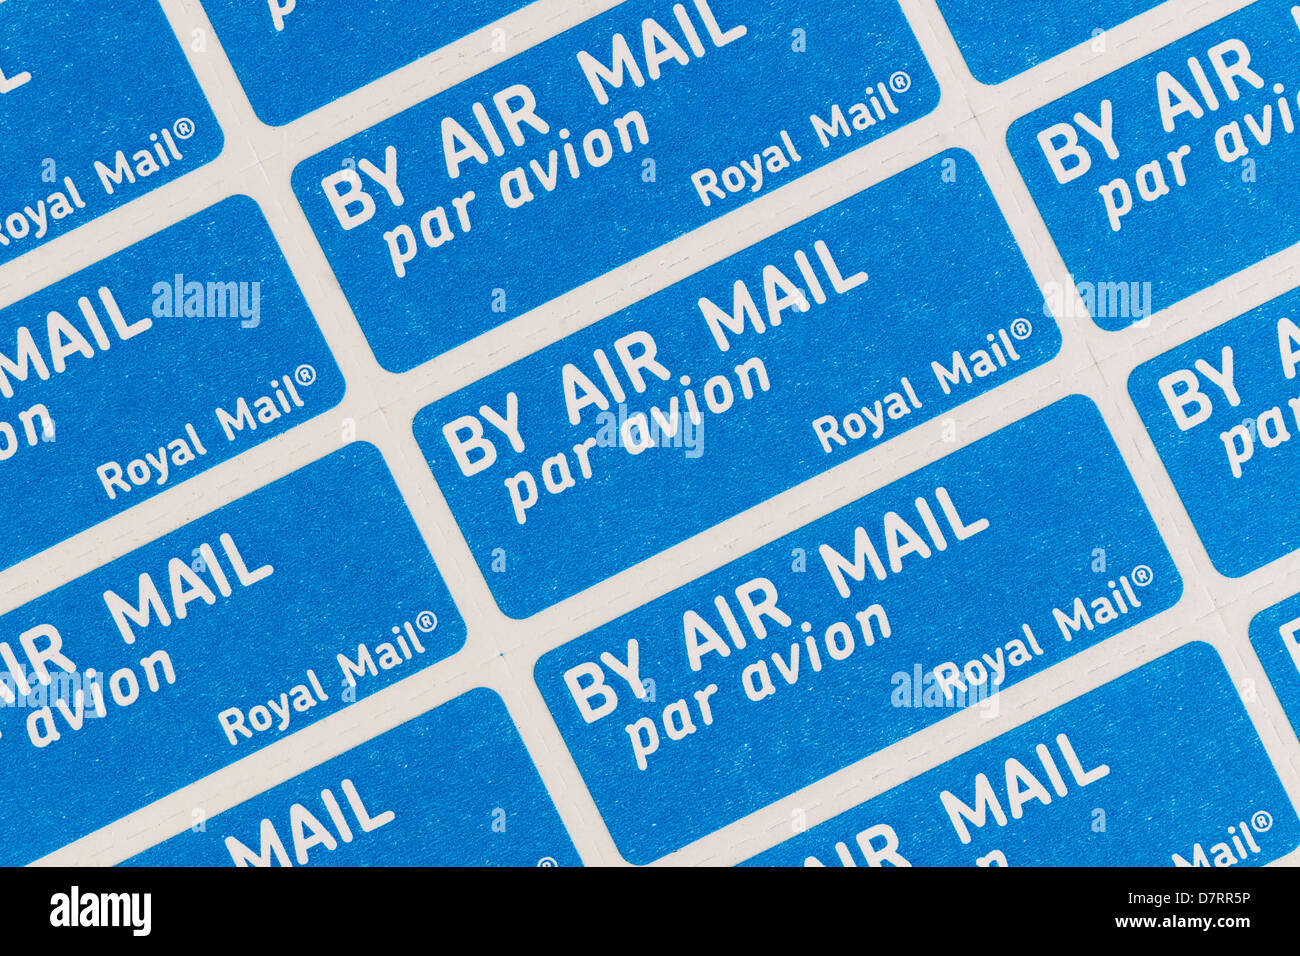 Royal Mail Air Mail stickers for letters sent by aeroplane - Stock Image